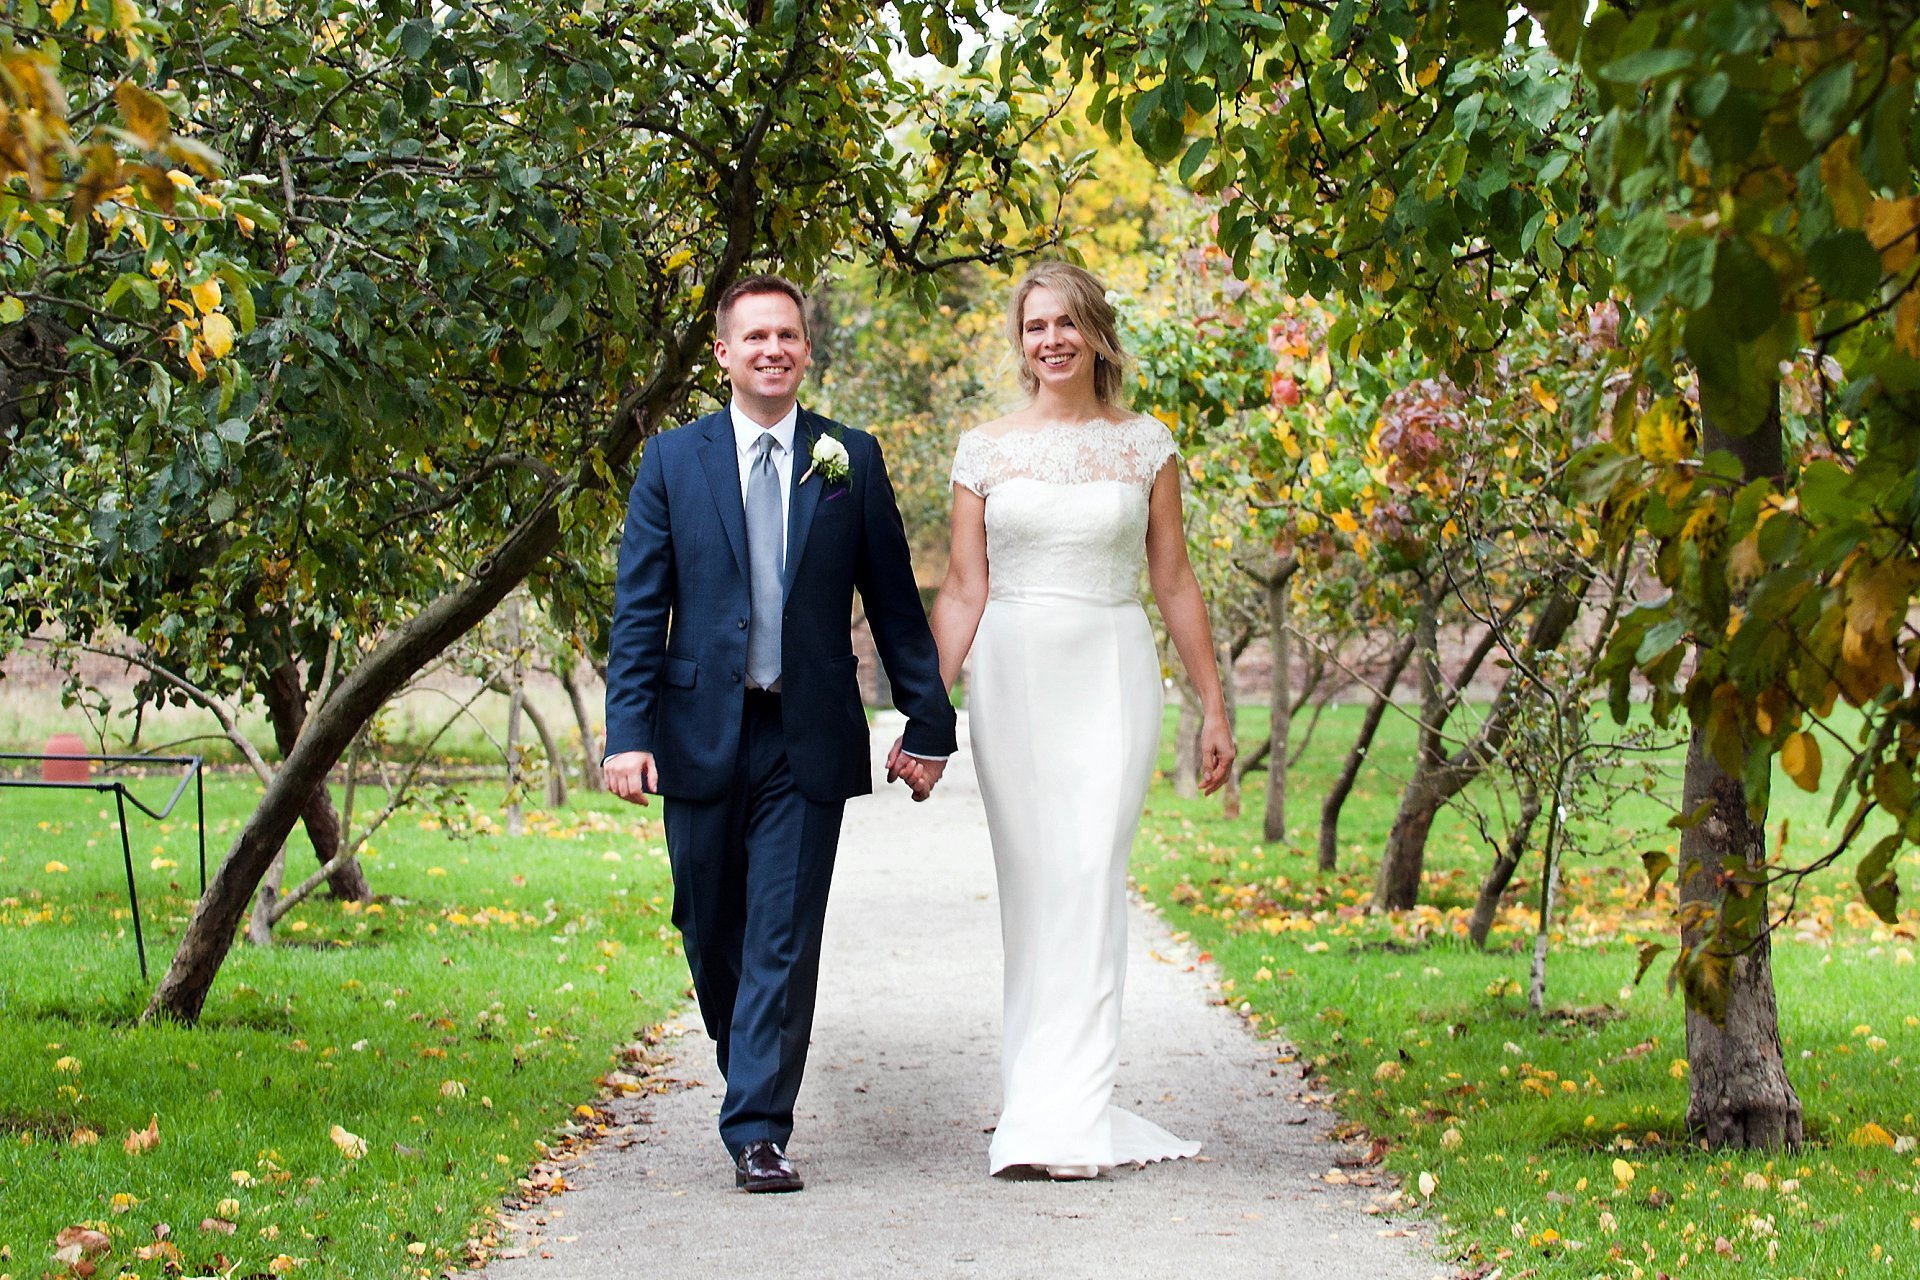 Fulham Palace wedding photographer Emma Duggan with a bride and groom in the orchard in Fulham Palace's walled garden